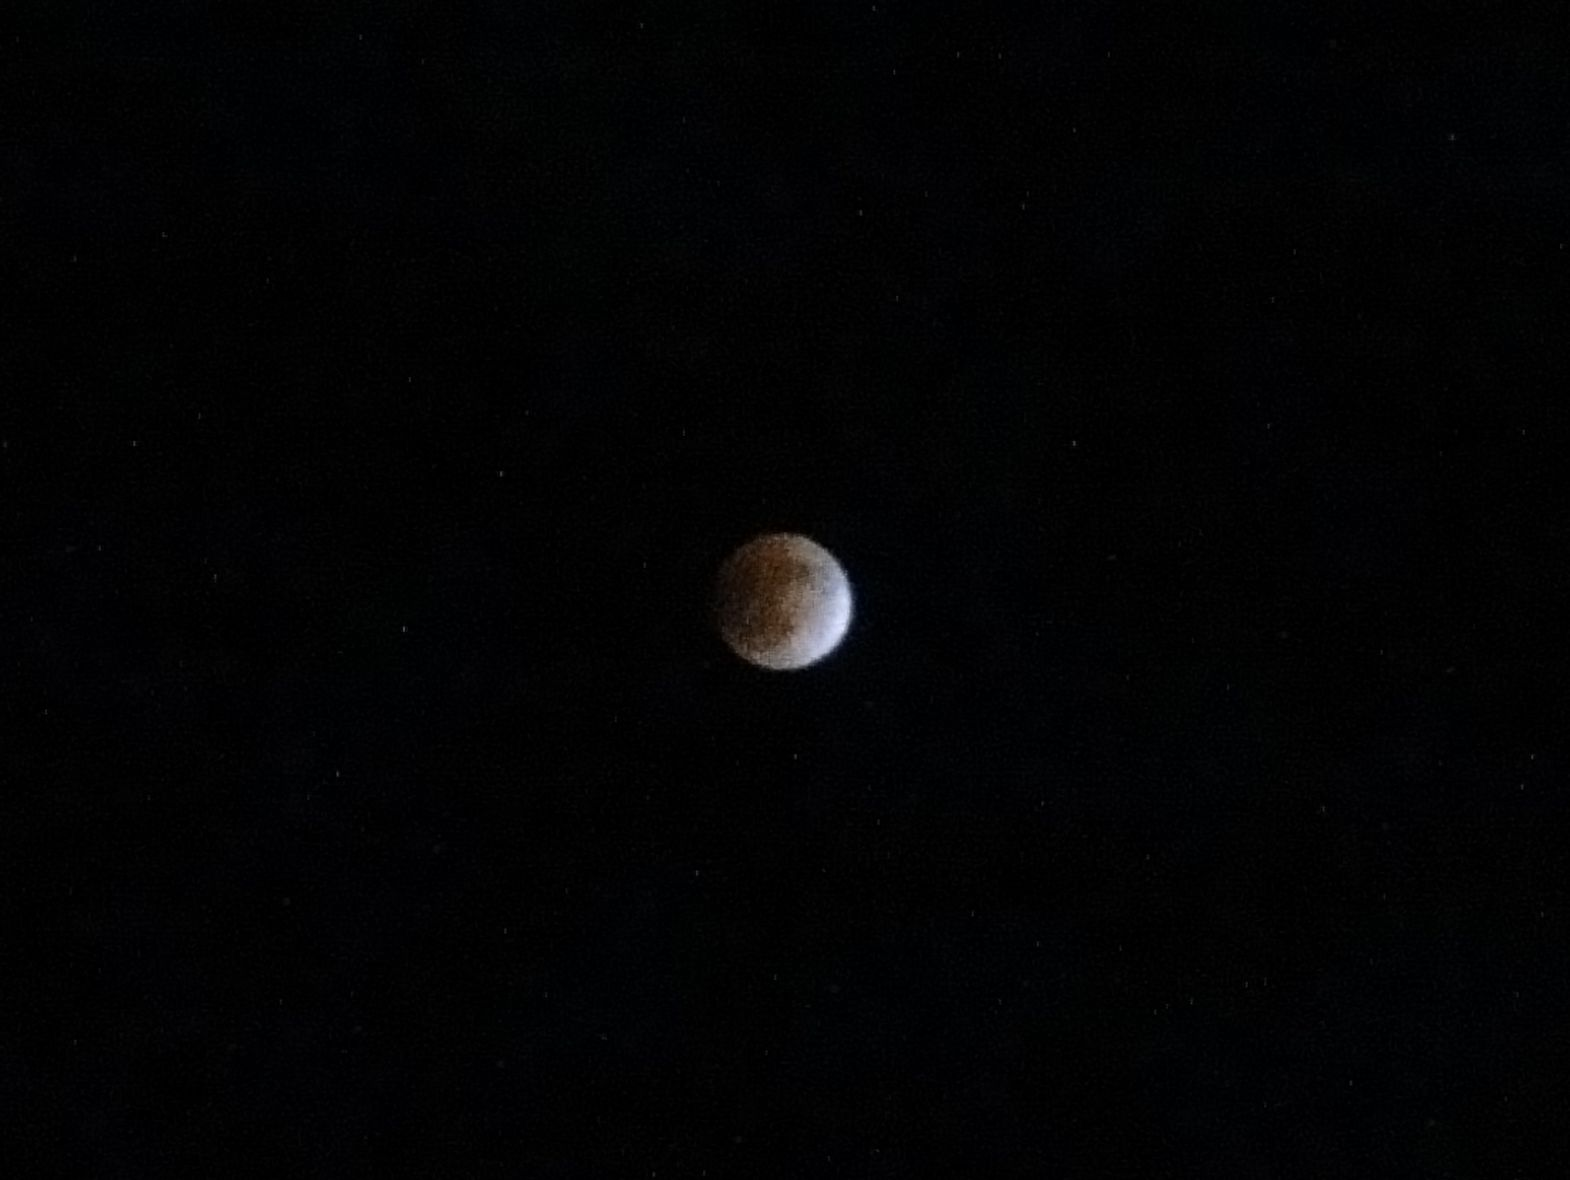 lunar_eclipse_132.jpg